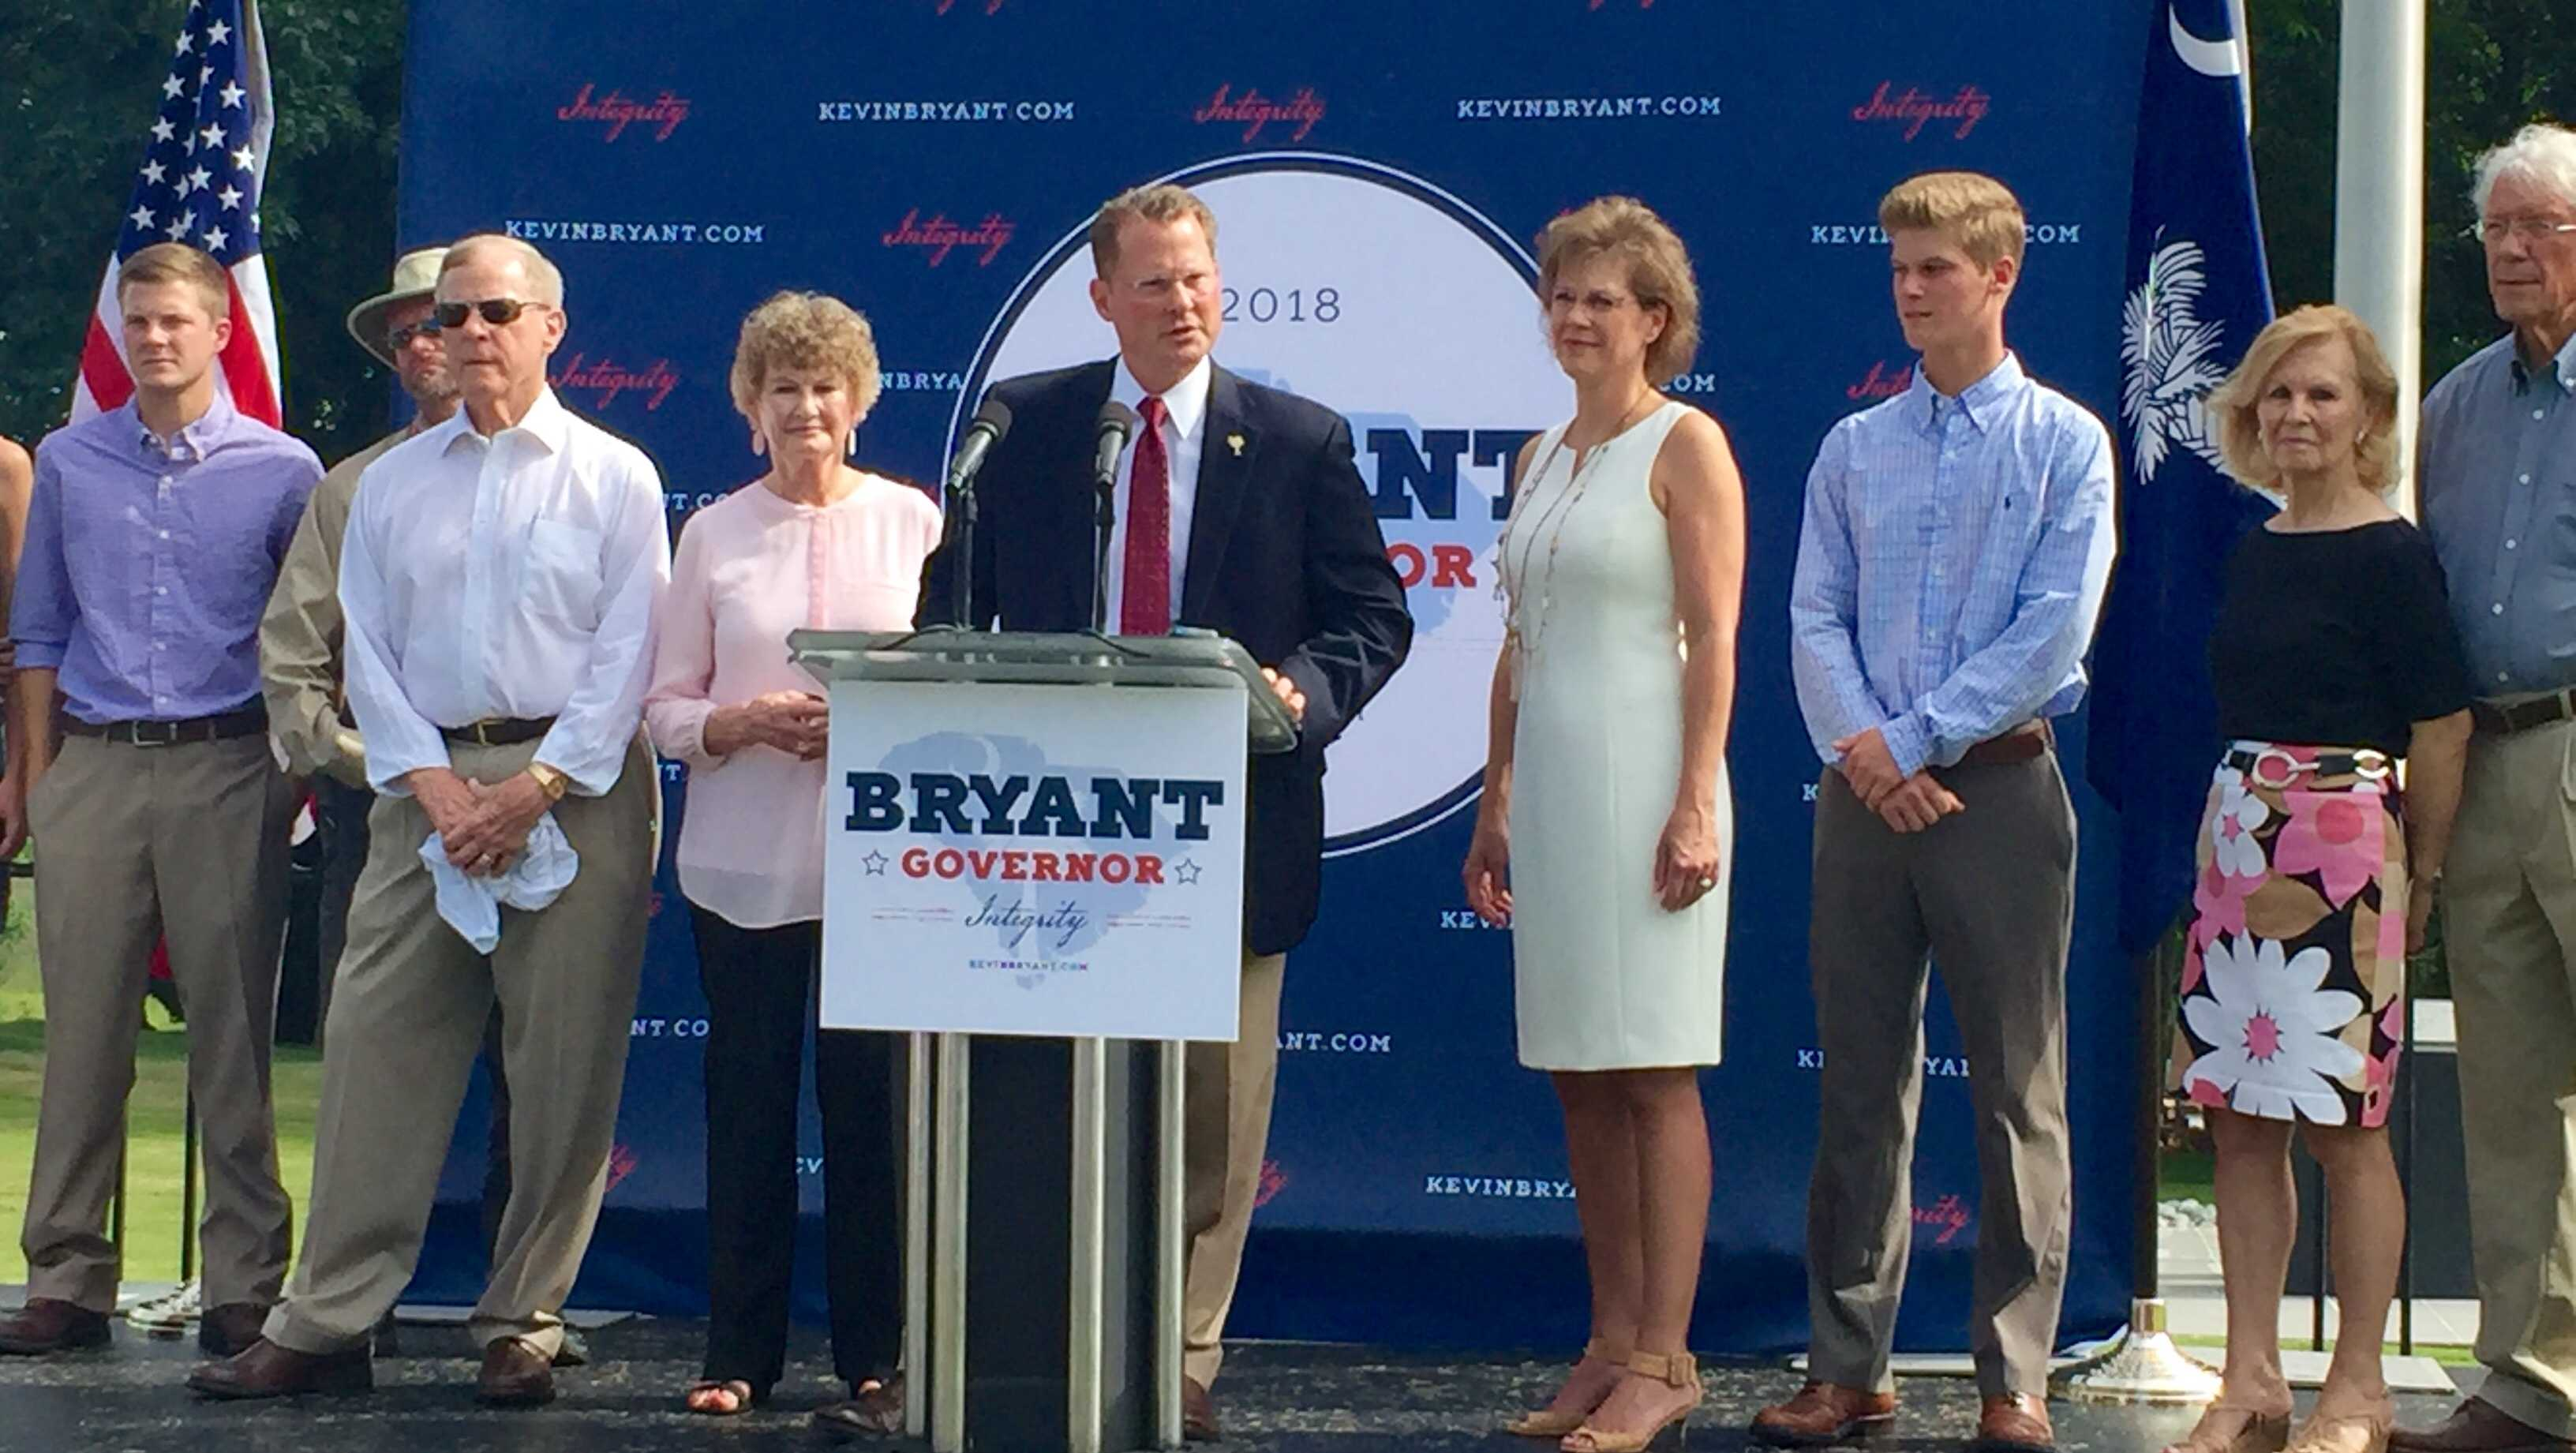 Lt. Gov. Kevin Bryant announcing his bid for SC Governor